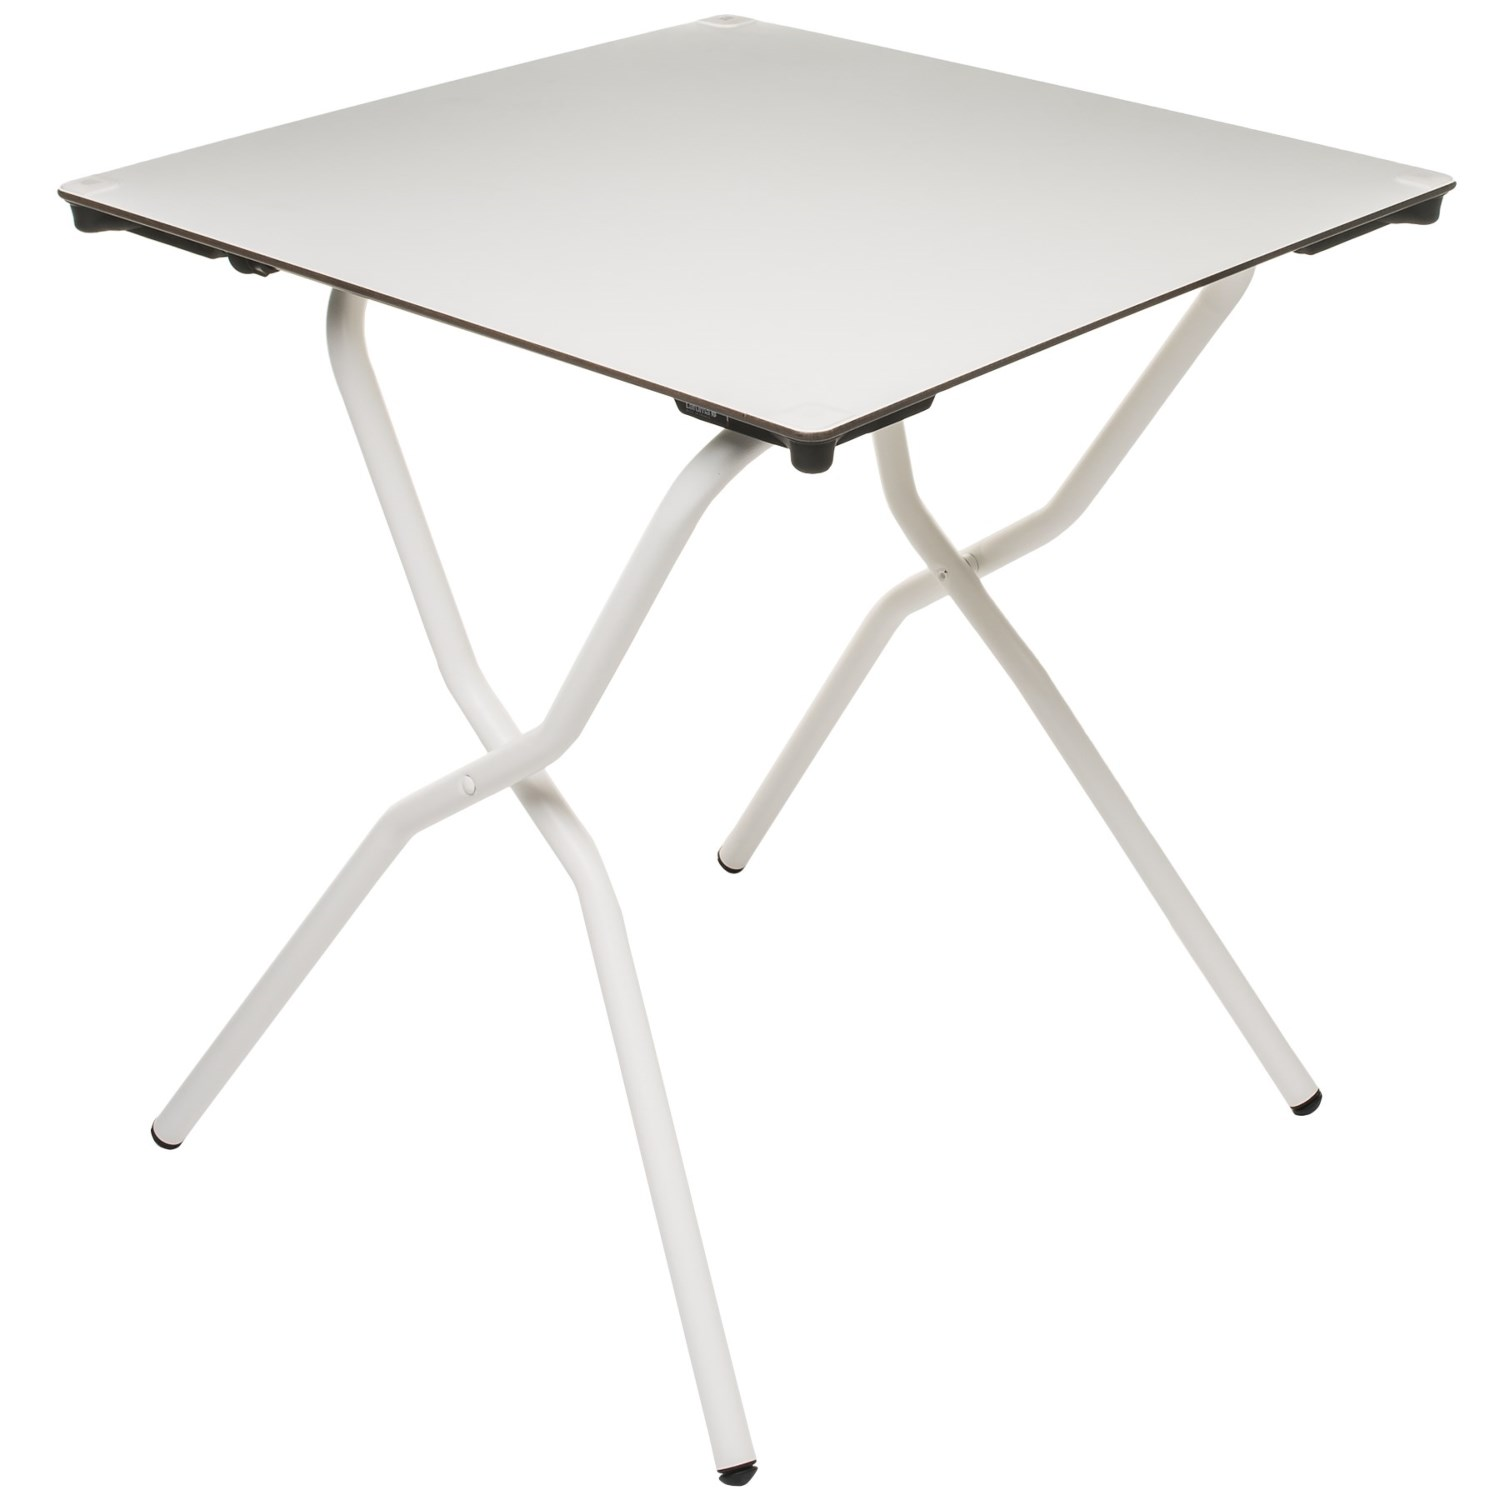 Lafuma Anytime Square Folding Table In White ...